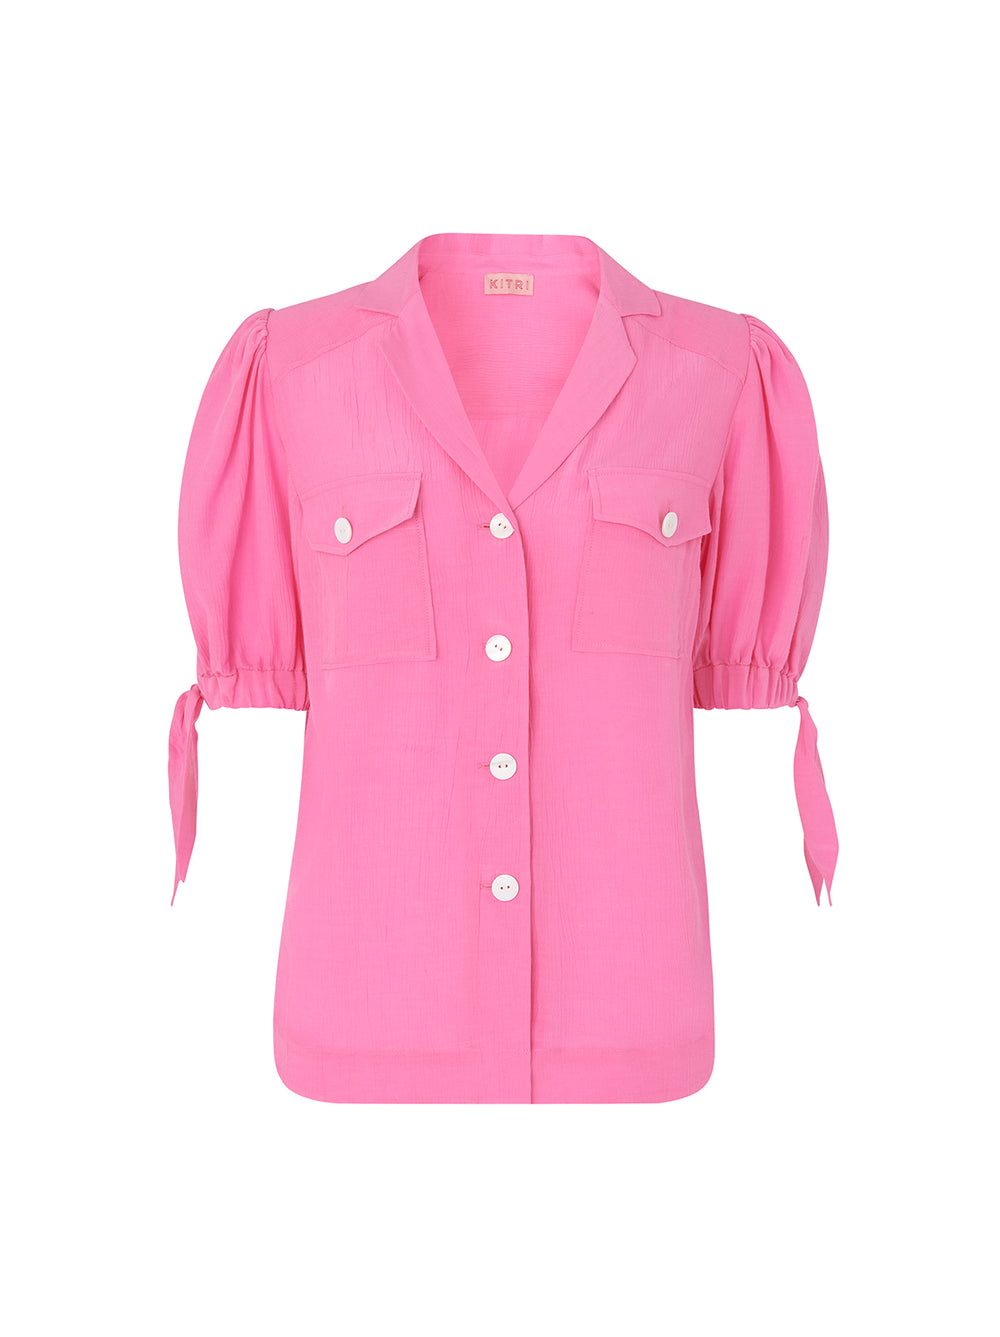 Ramona Pink Tie Sleeve Shirt by KITRI Studio